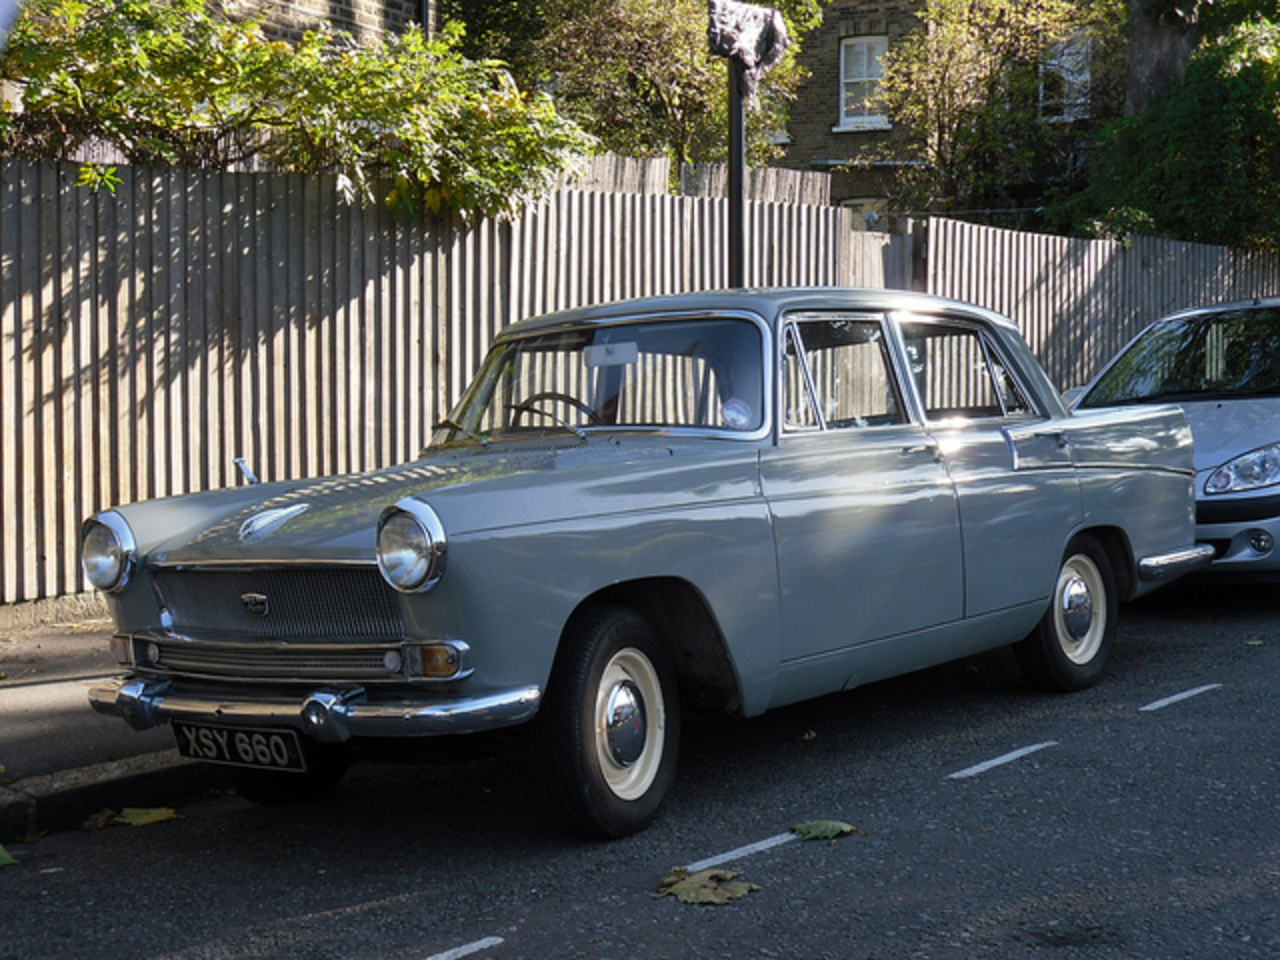 1960 Austin A55 Cambridge Saloon. | Flickr - Photo Sharing!